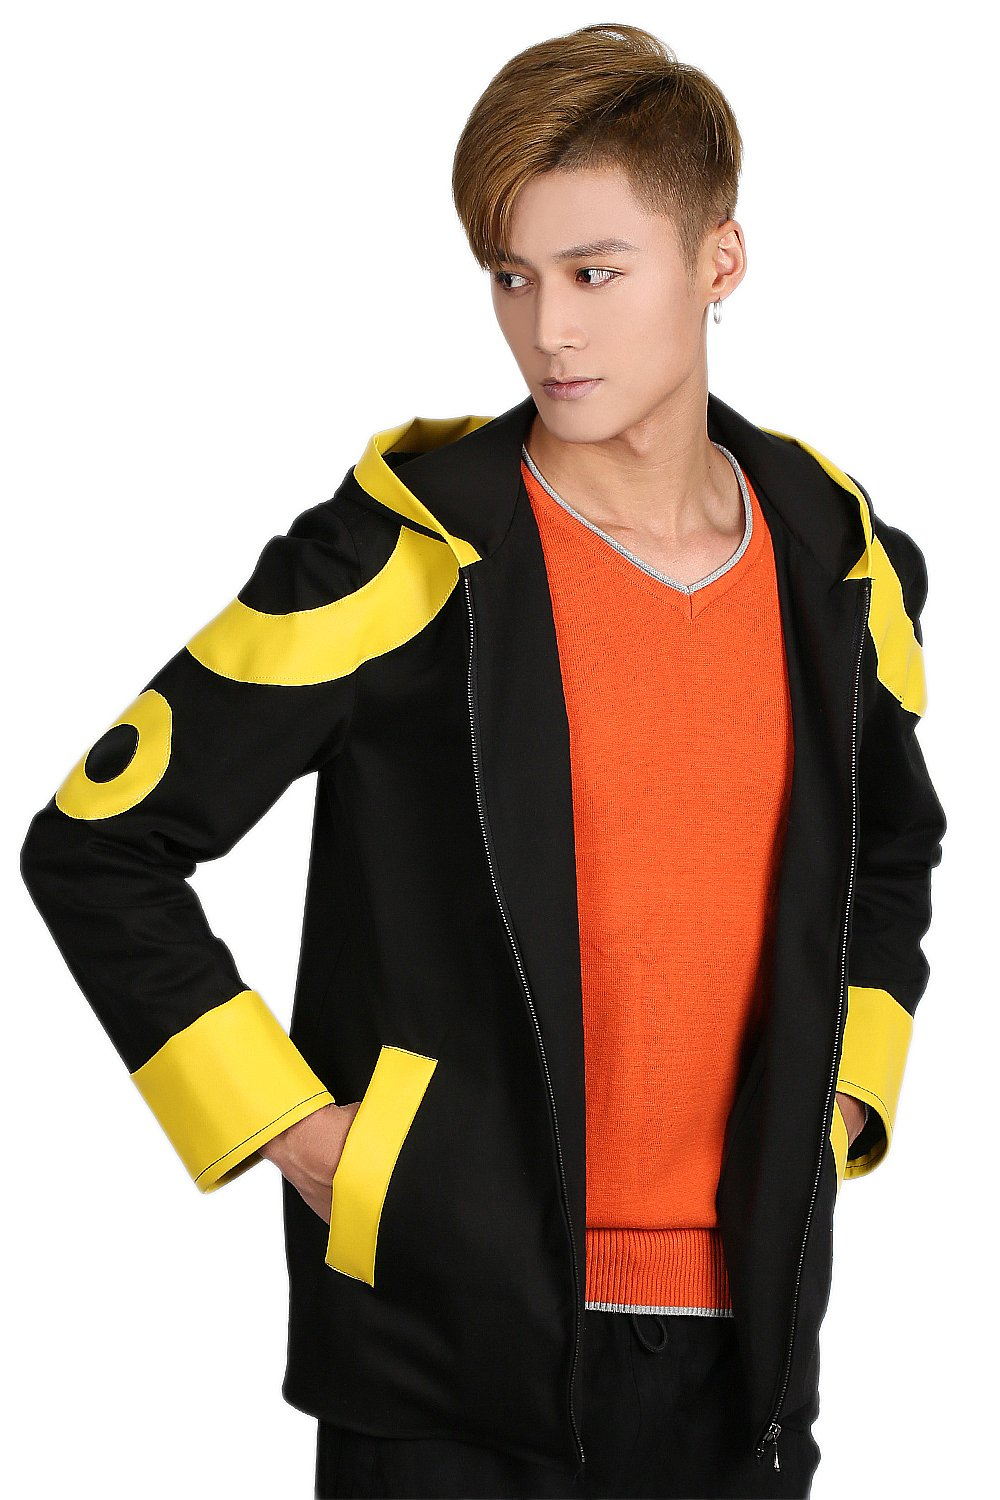 Mystic Messenger Costume Deluxe Cotton Coat and Long-sleeve Tees Jacket XL